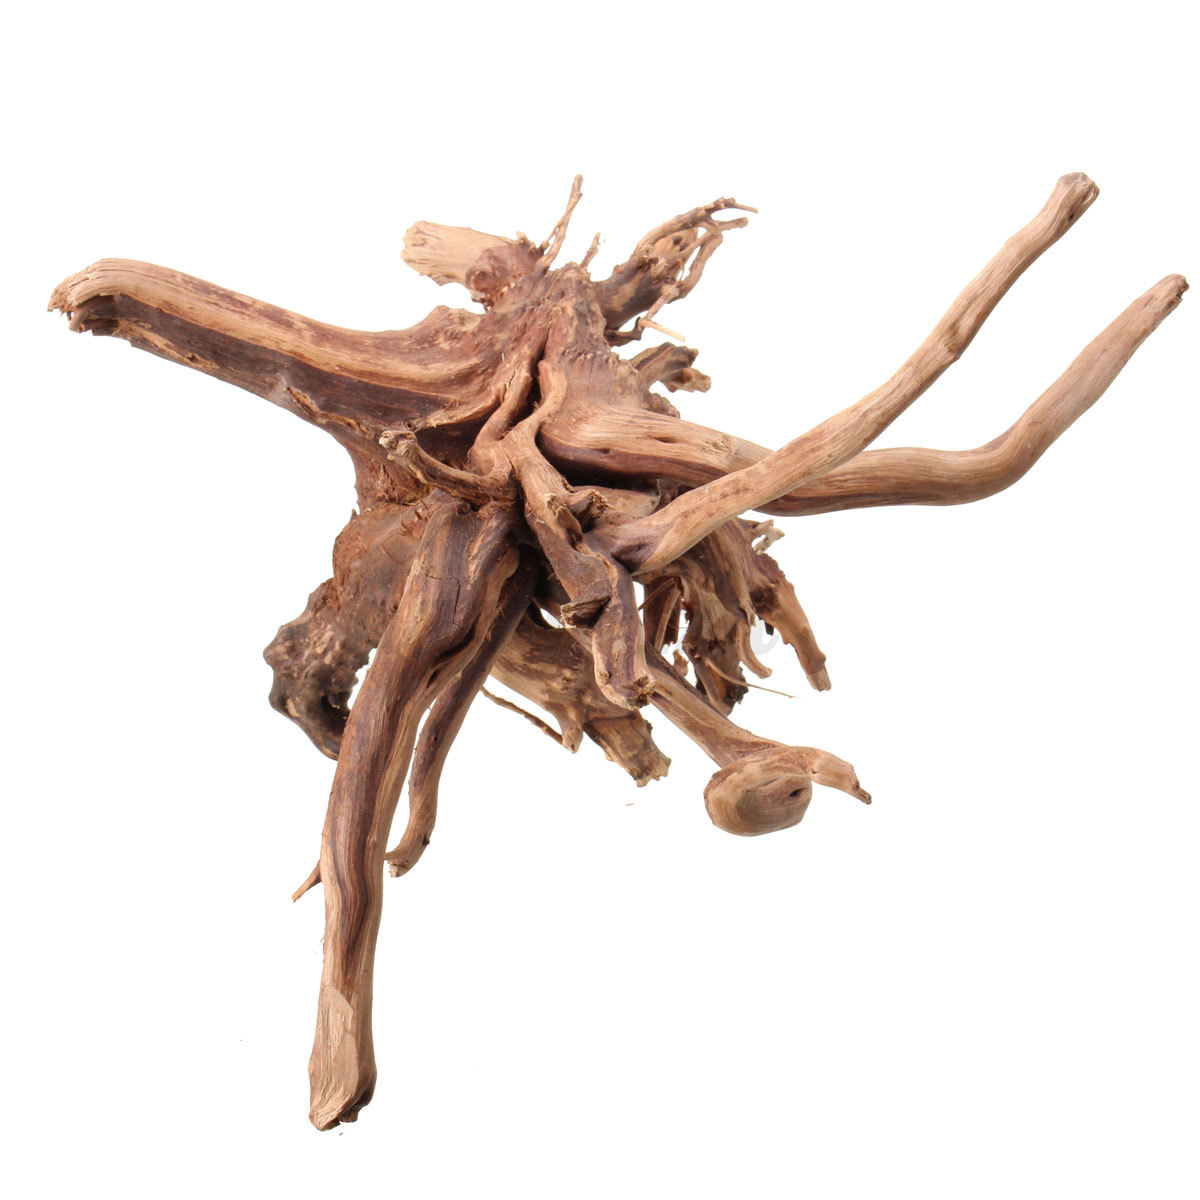 Bois flott arbre racine tronc branche aquarium ornement for Branche bois flotte decoration